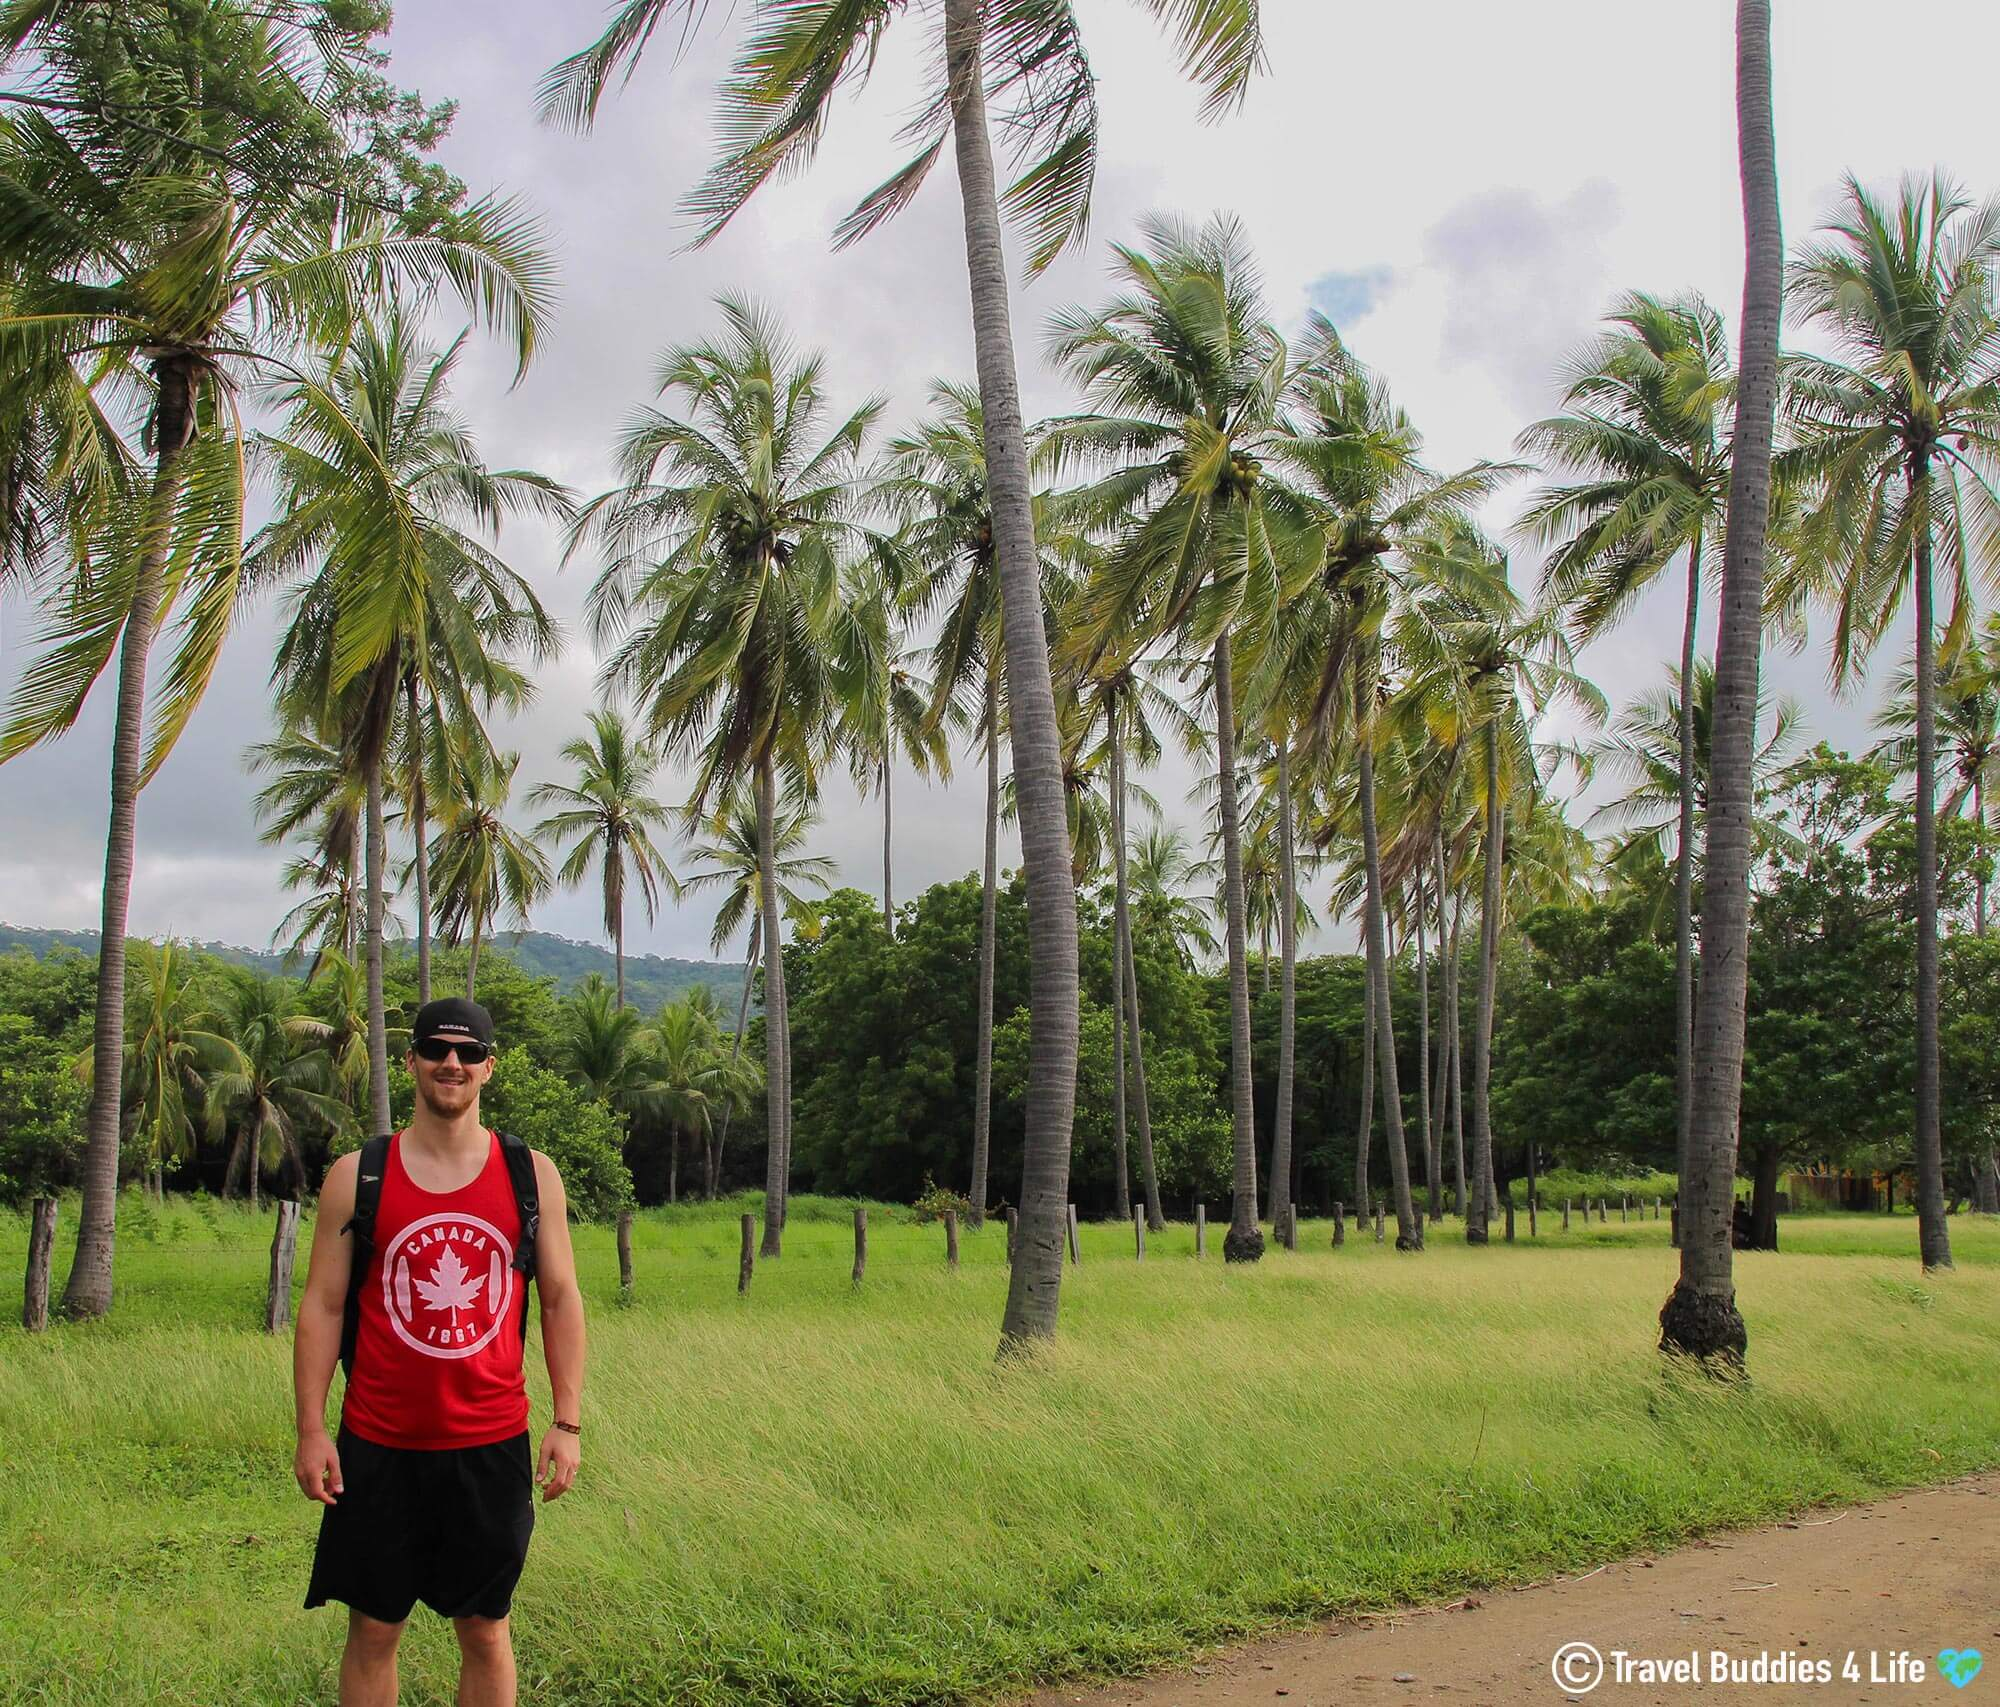 Joey Standing In A Field Of Palm Trees On The Pacific Coast Of Costa Rica, Central America